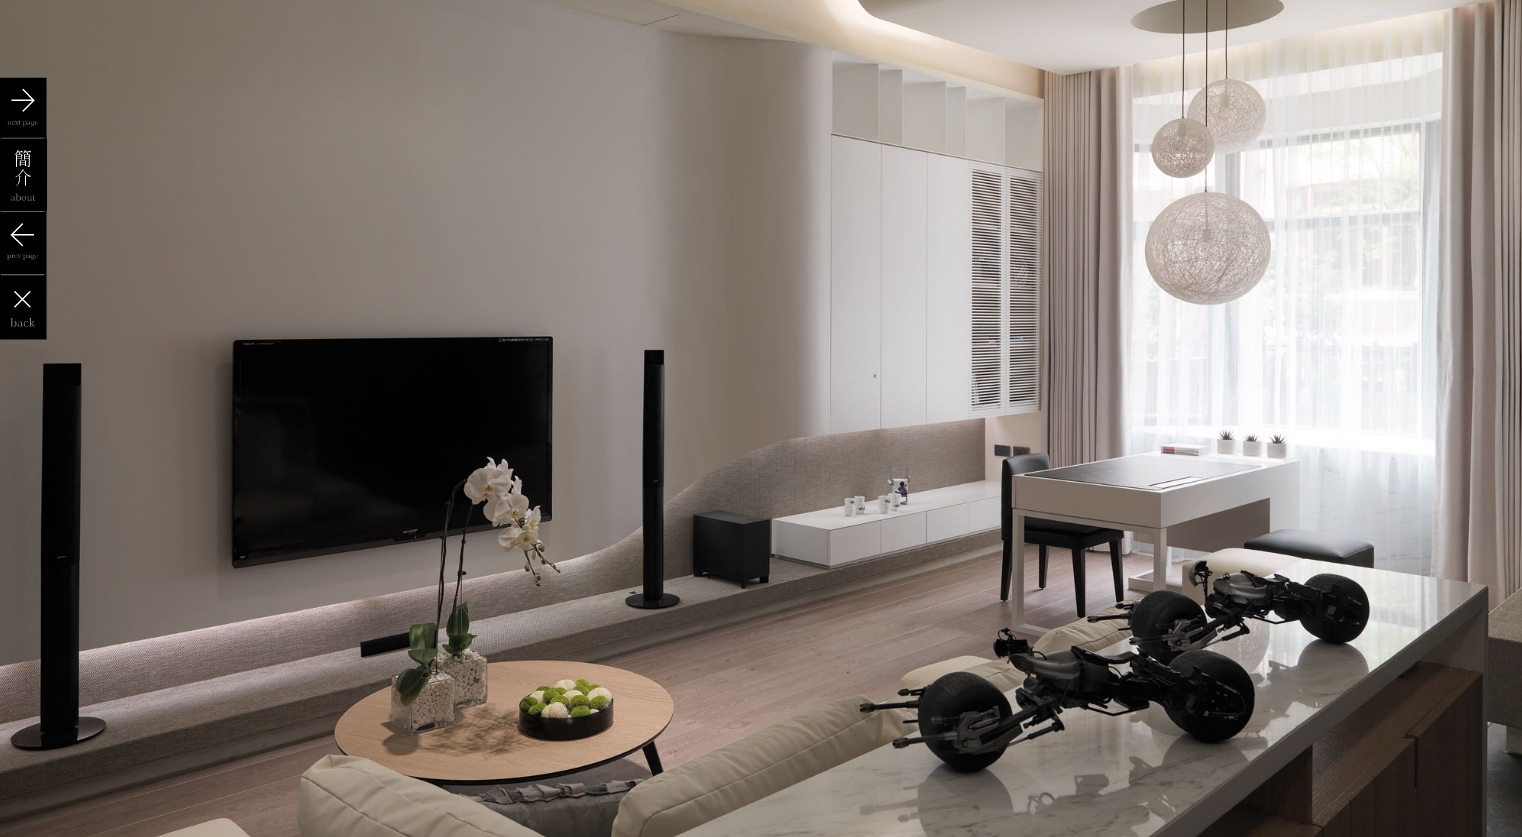 White modern living room 2 interior design ideas for Modern interior design living room white